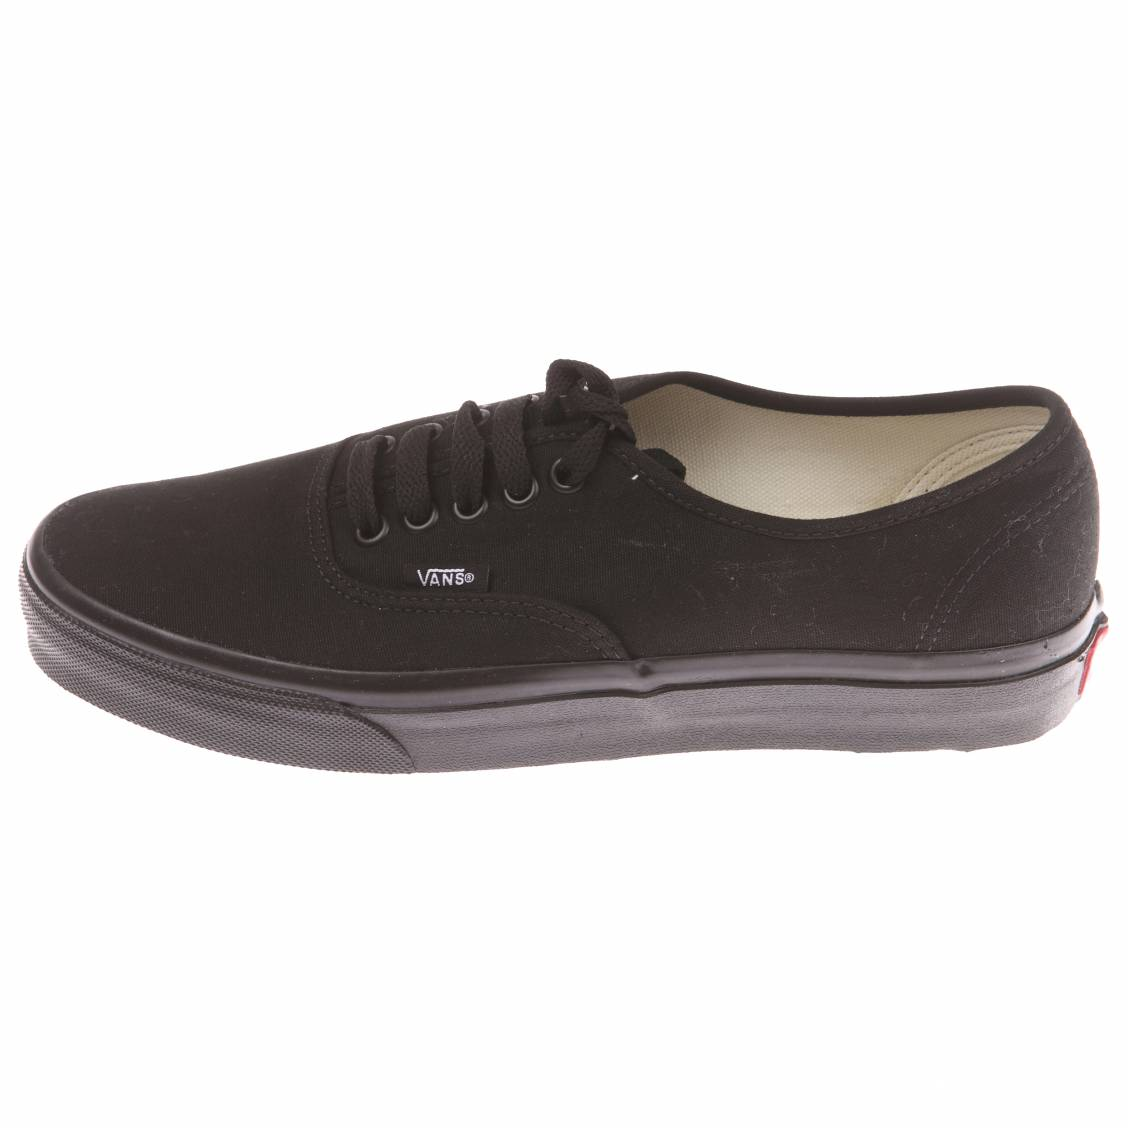 Vans Homme Cuir Marron gps-world.fr